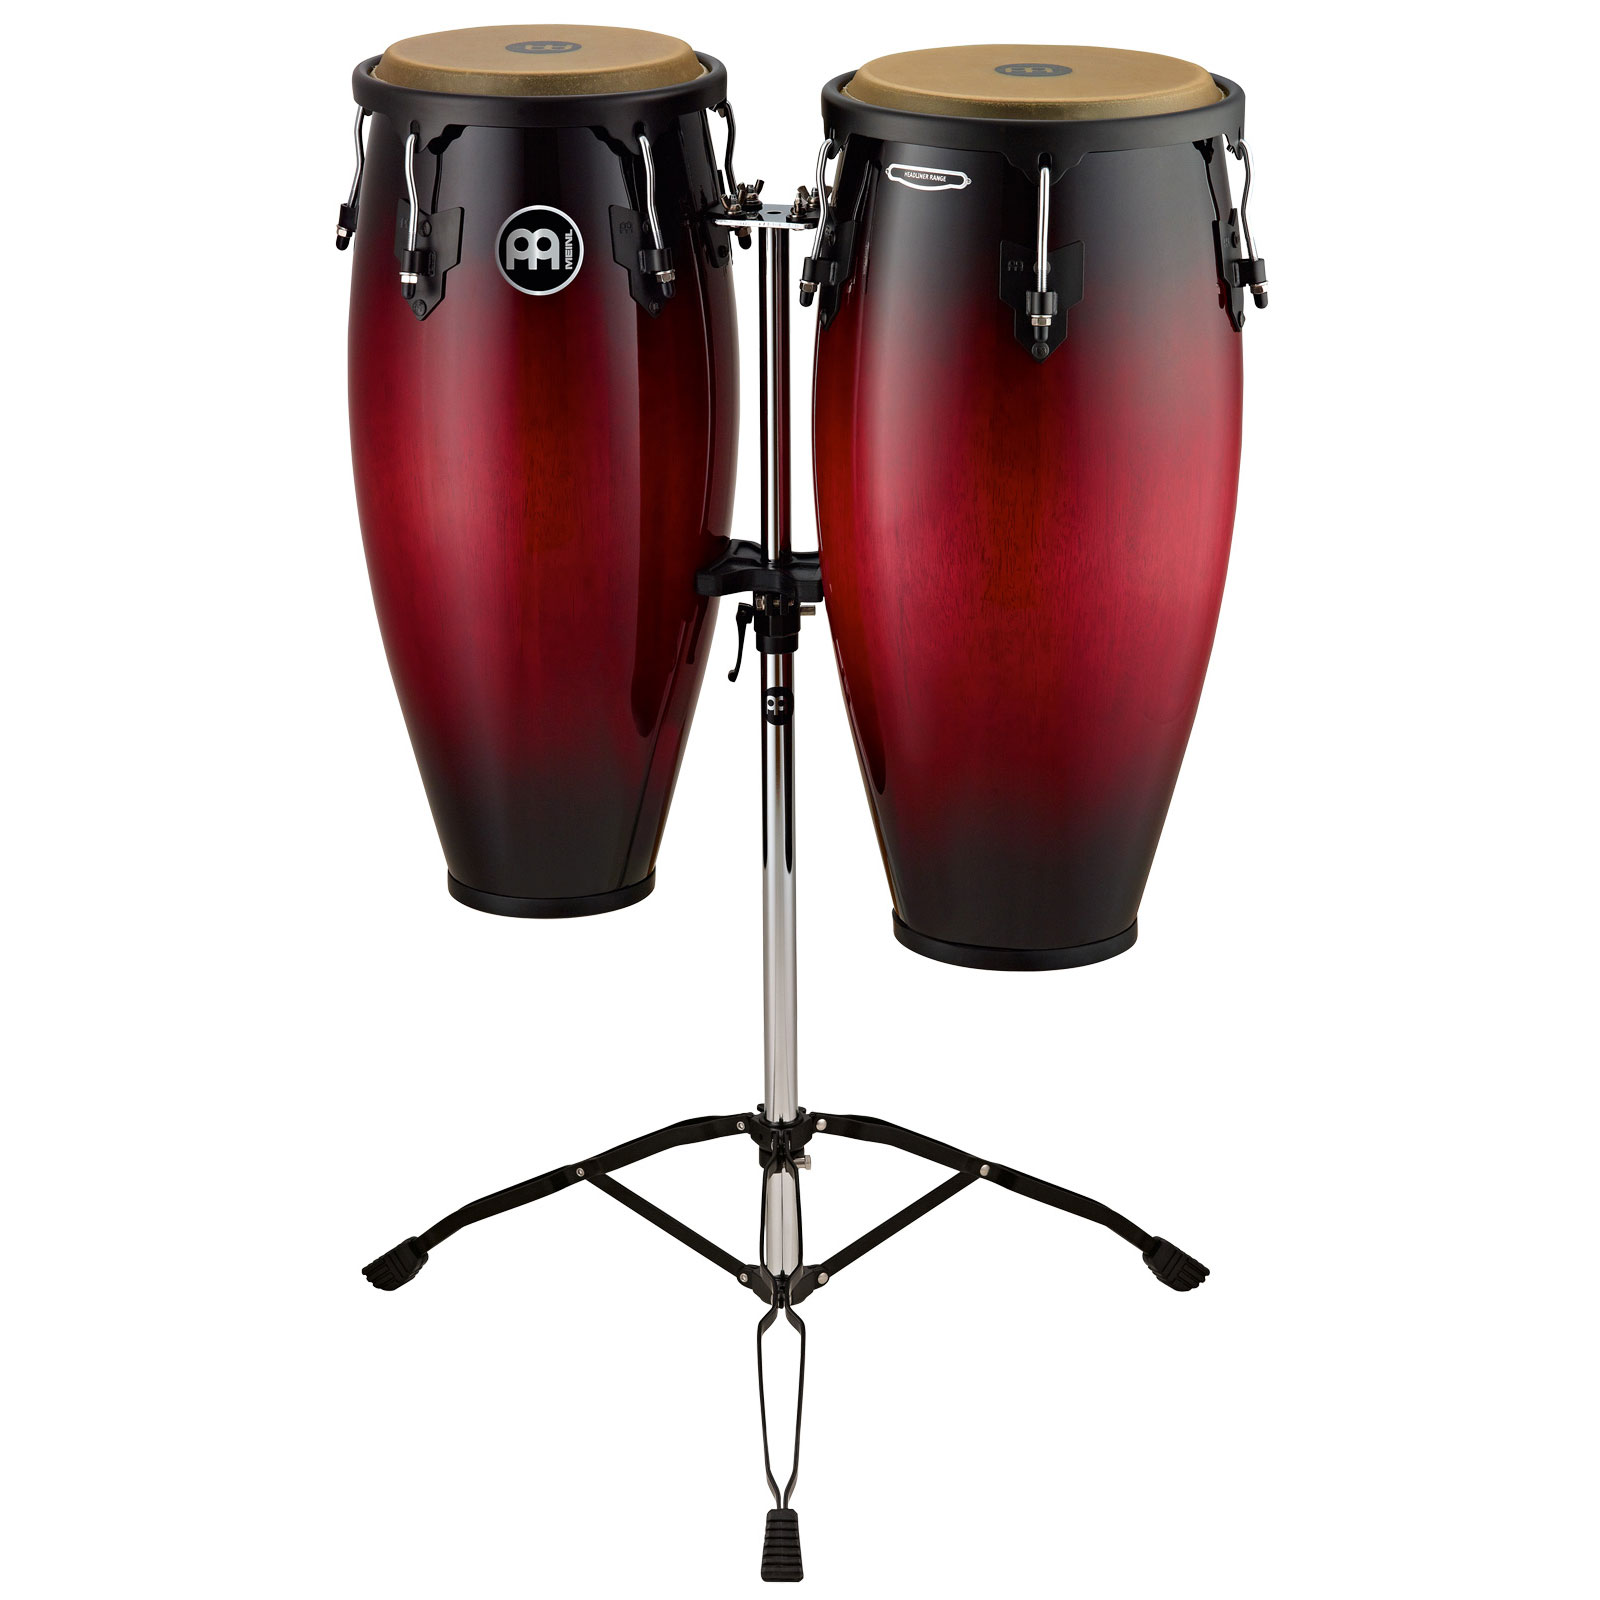 "Meinl 10"" & 11"" Headliner Series Conga Set in Wine Red Burst with Stand"